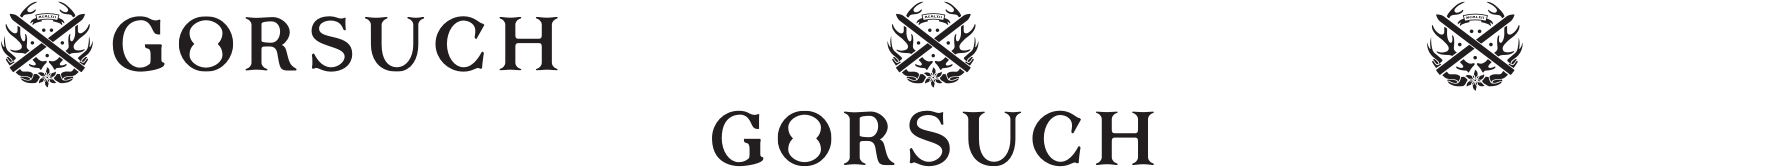 Gorsuch logo shown horizontally, stacked, and with only the crest.